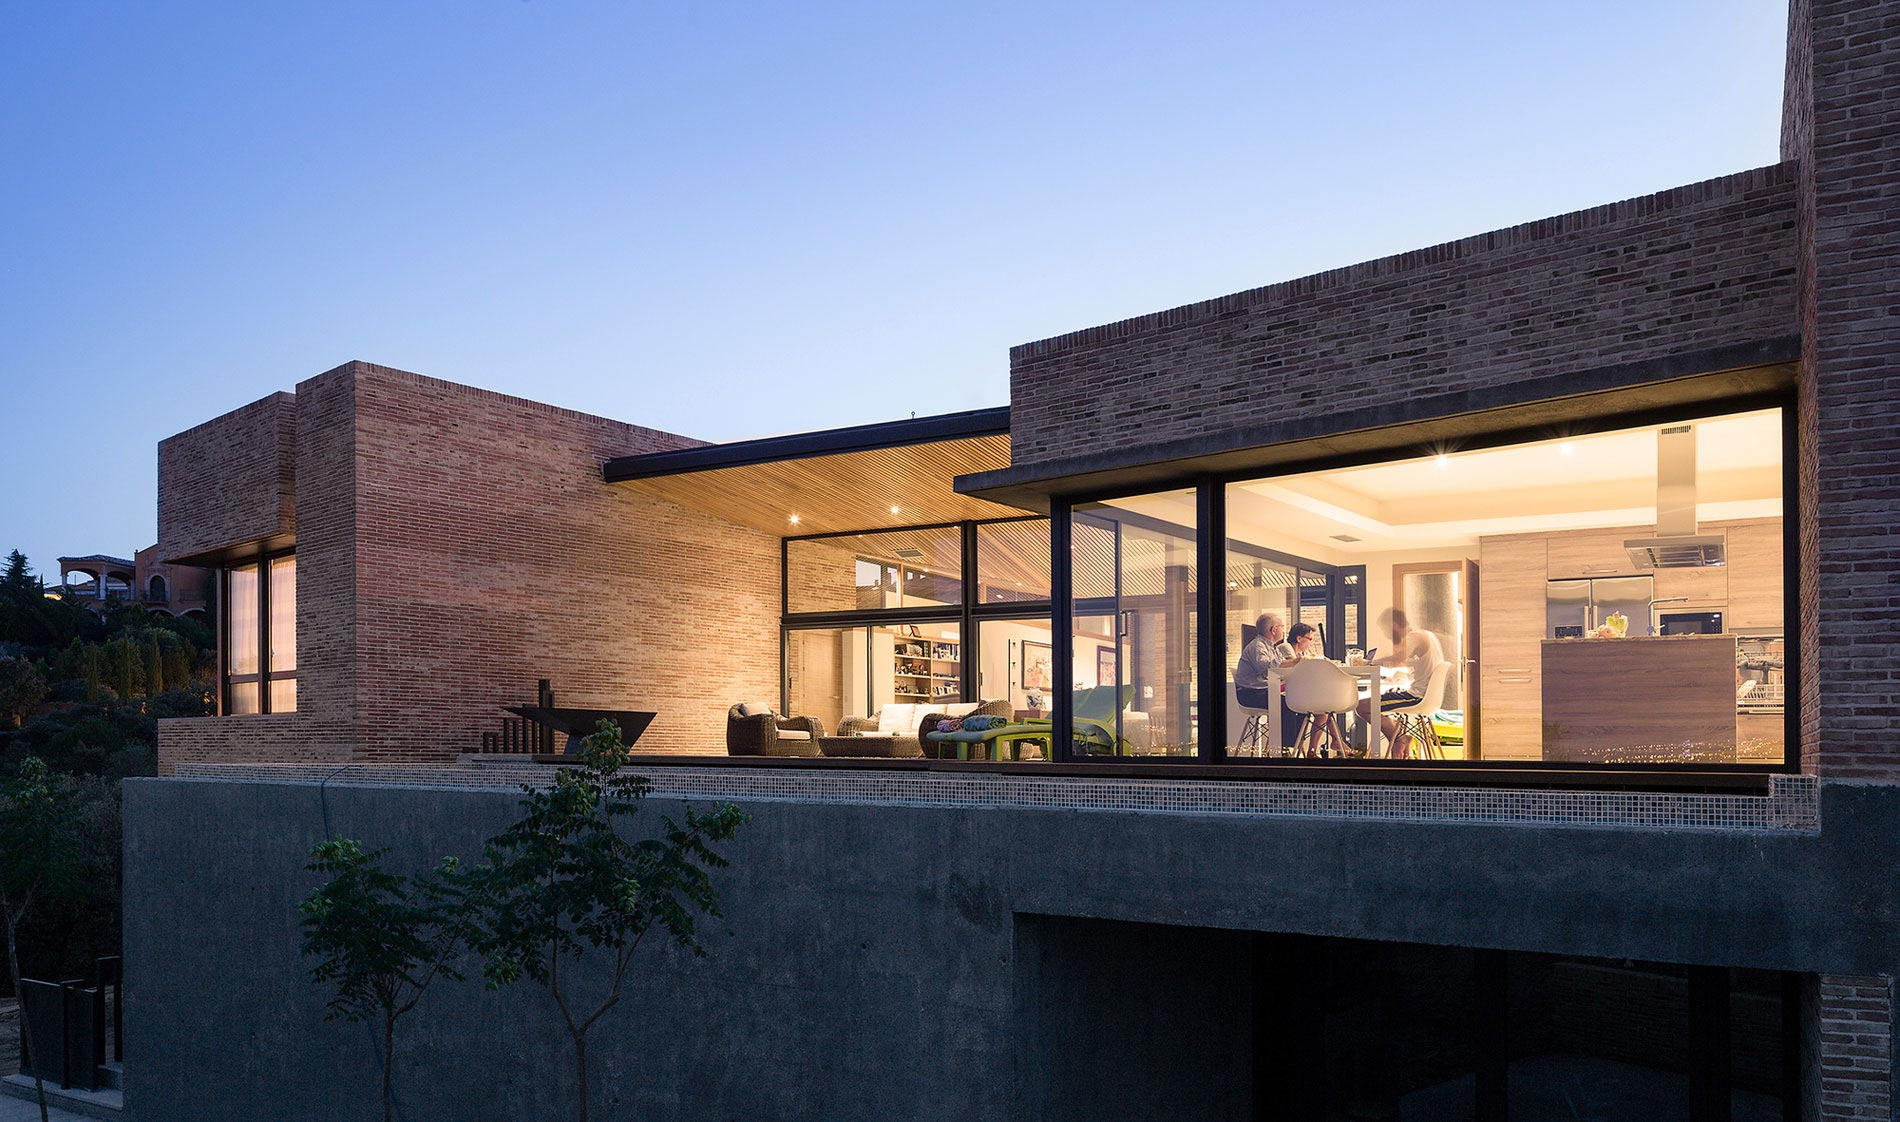 Architectural home design brick house by mariano molina - Molino de la hoz ...